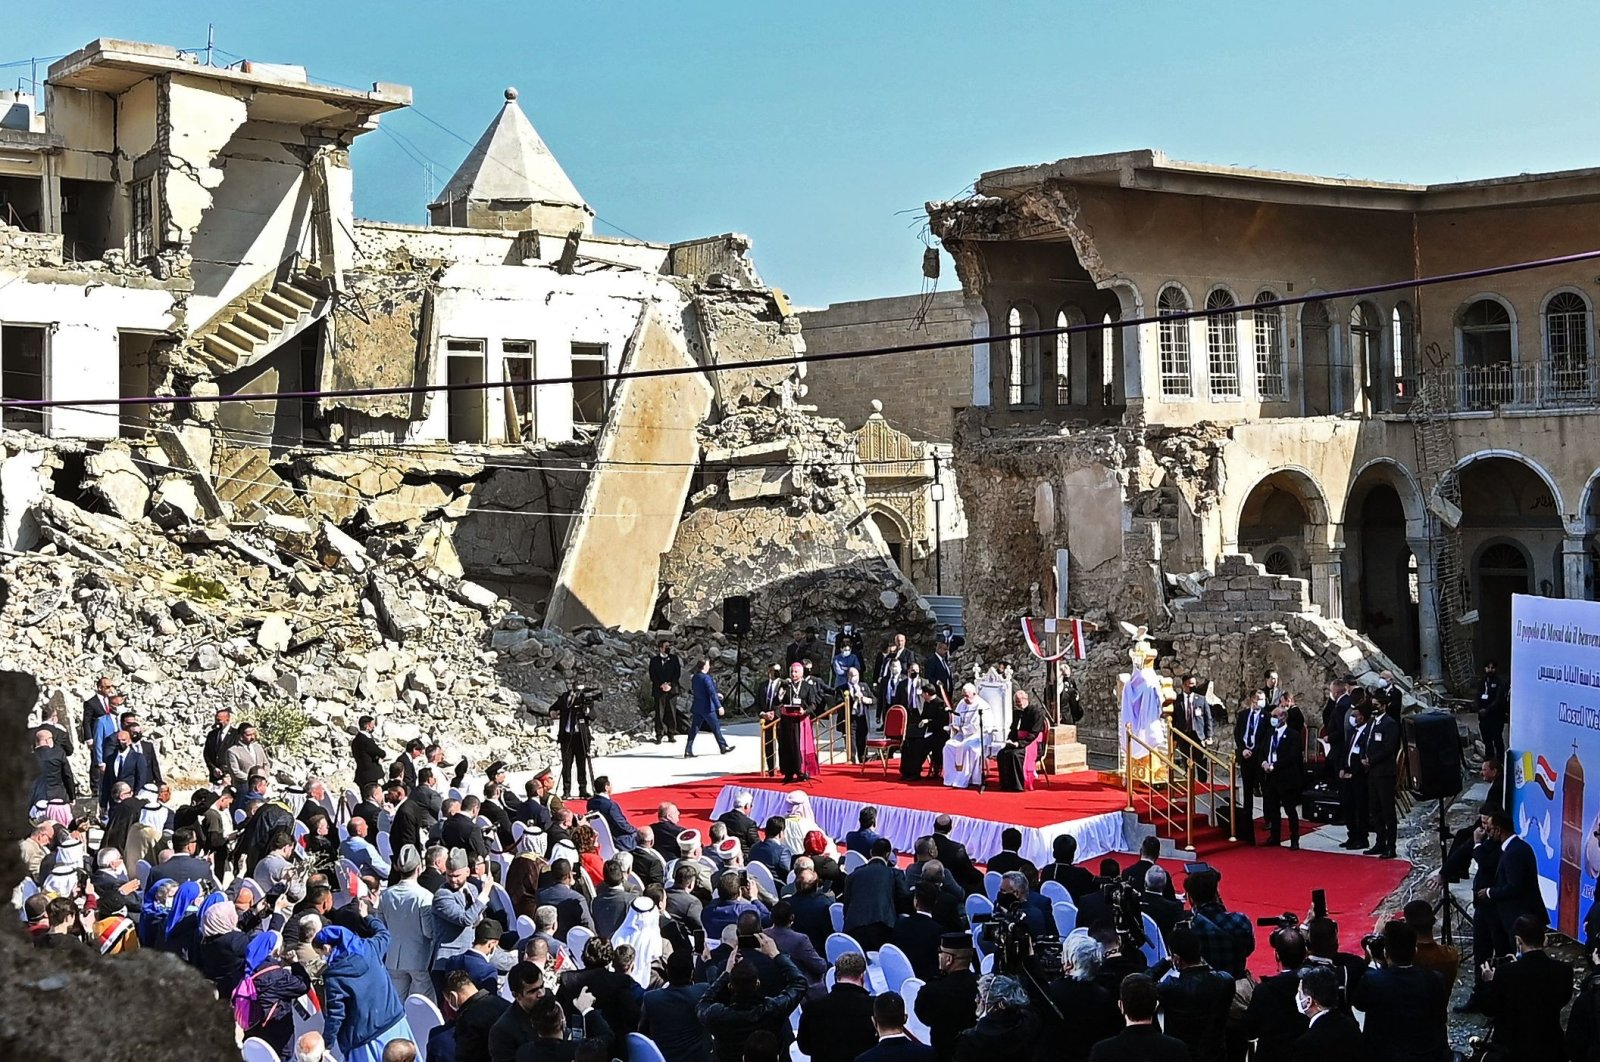 Pope Francis speaks at a square near the ruins of the Syriac Catholic Church of the Immaculate Conception (al-Tahira-l-Kubra), in the old city of Iraq's northern Mosul, March 7, 2021. (AFP Photo)